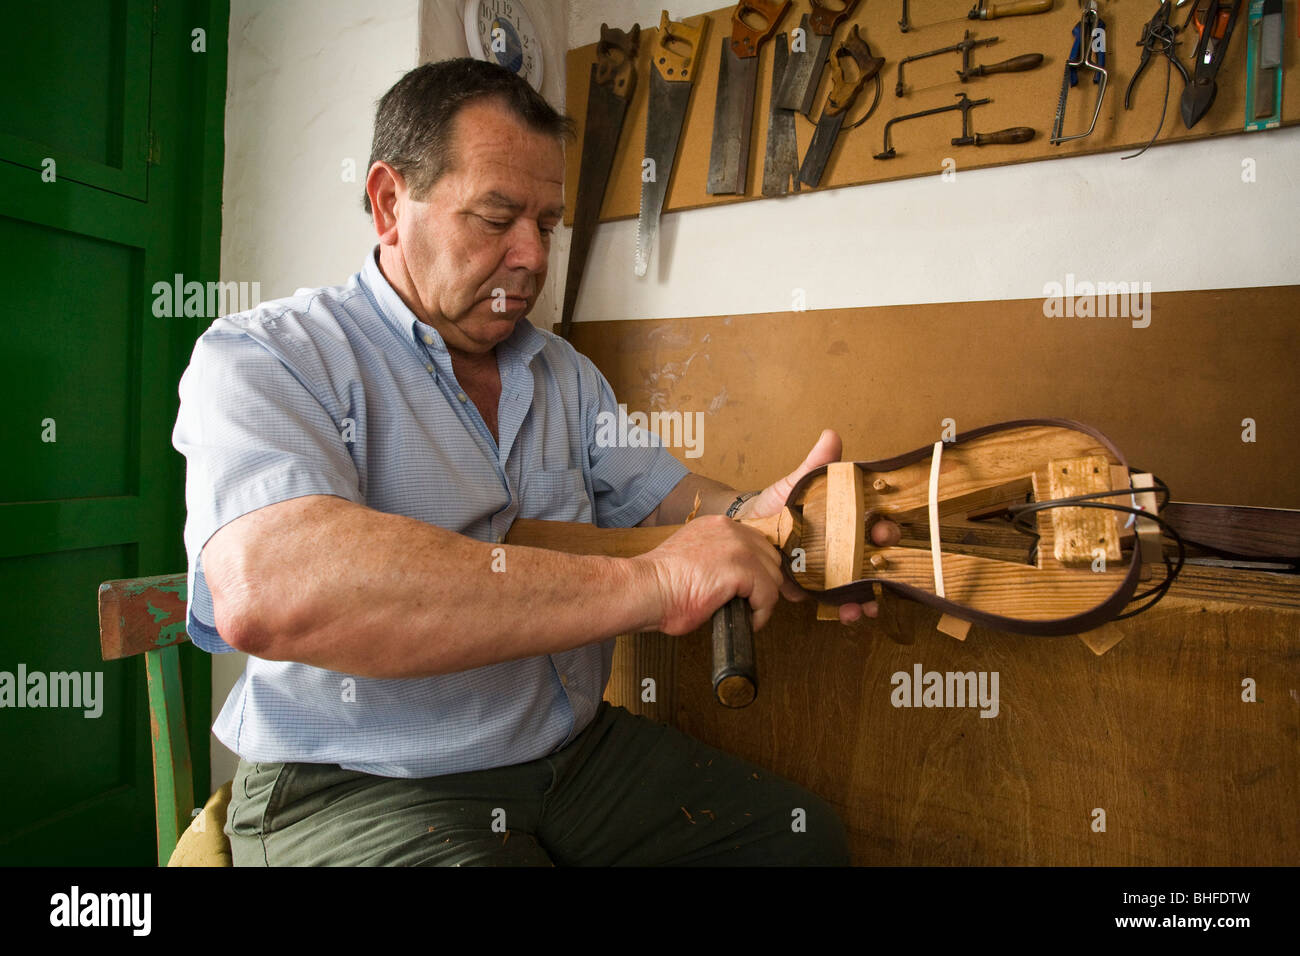 Antomio Lemes Hernandez, constructor of Timples, artisanry, stringed instrument, musical instrument, Teguise, Lanzarote, - Stock Image